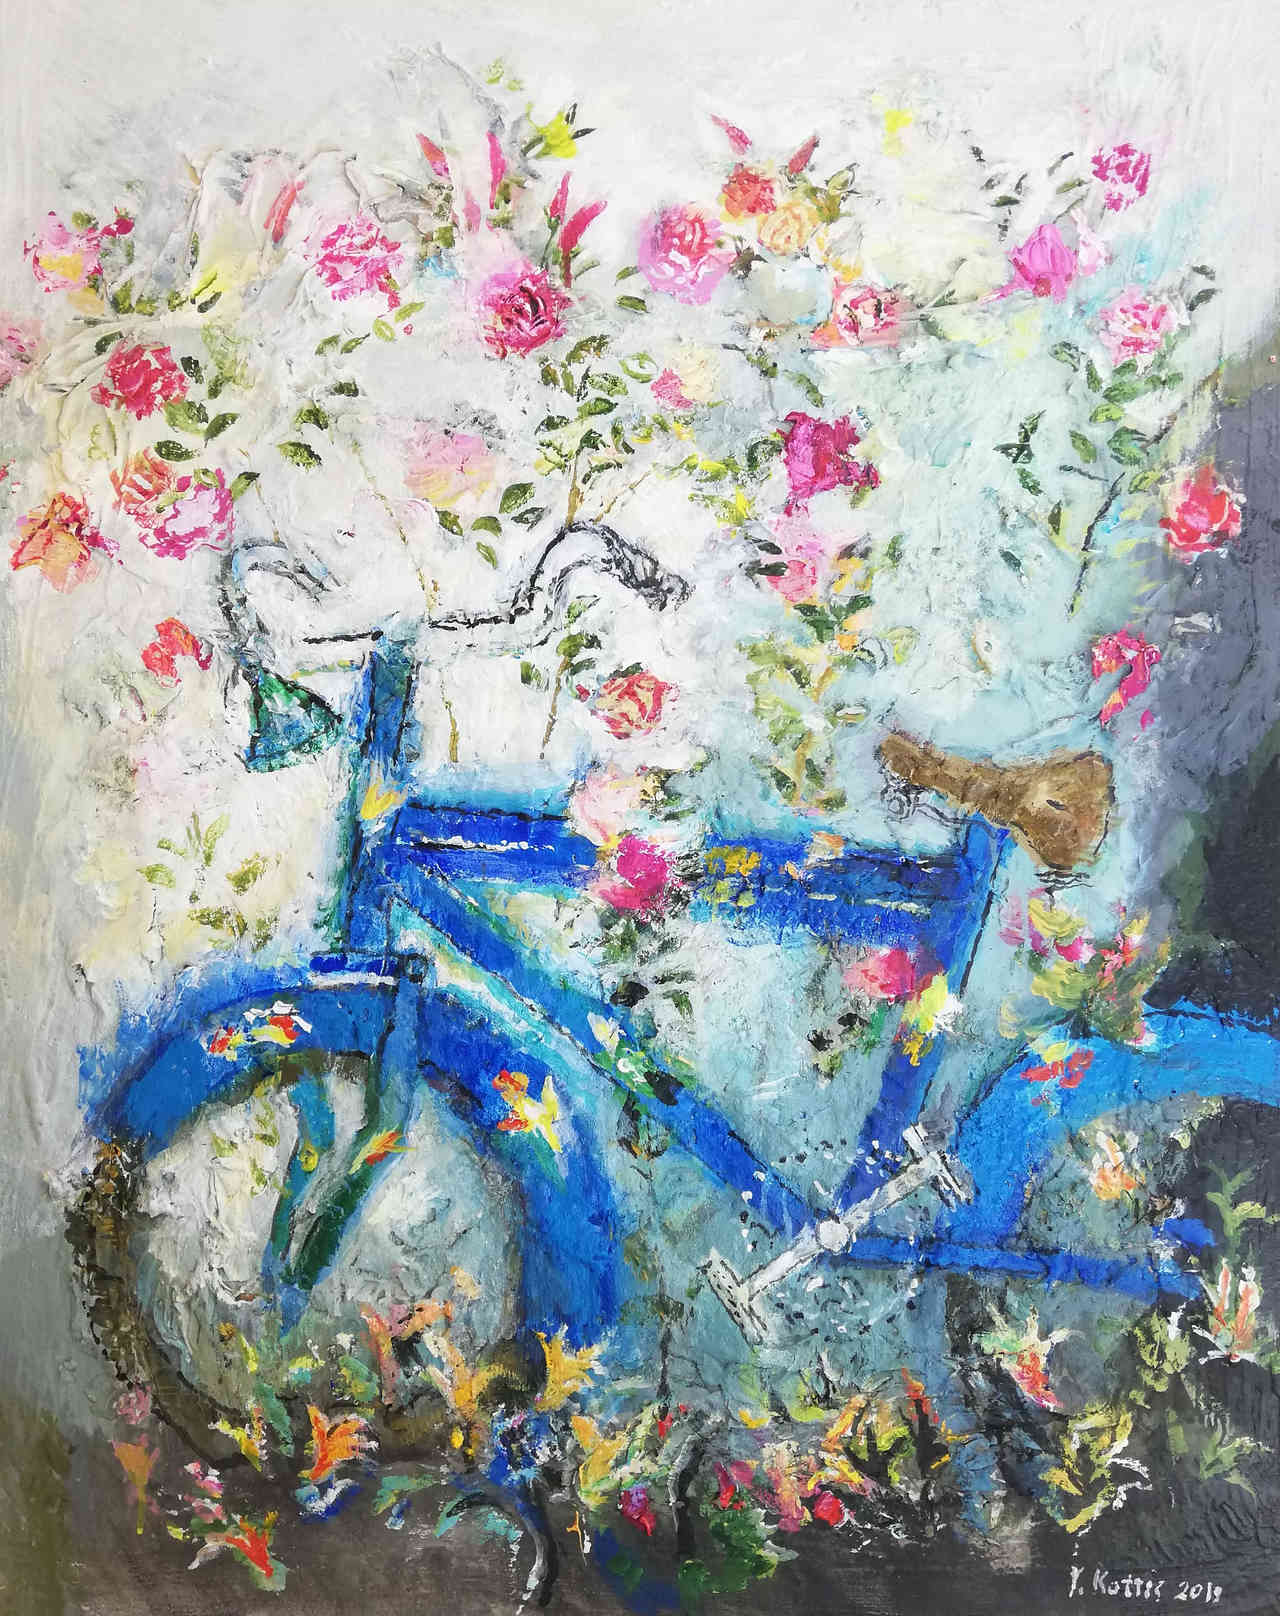 Giannis Kottis, Blue bike, oil on canvas, 110 x 80 cm, 2019